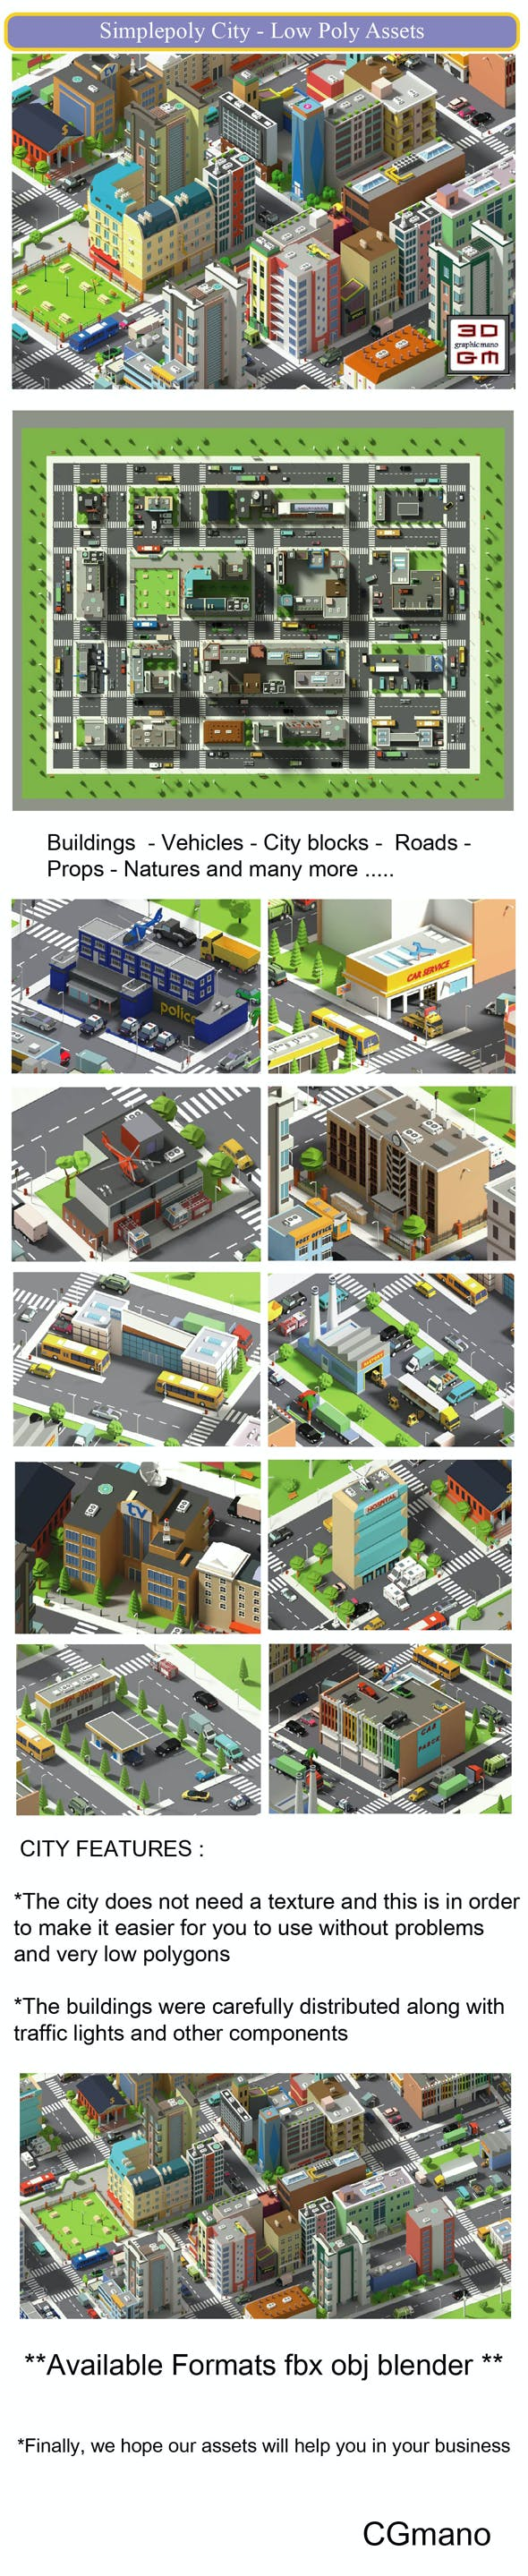 SimplePoly City - Low Poly Assets Low-poly 3D model Low-poly - 3DOcean Item for Sale